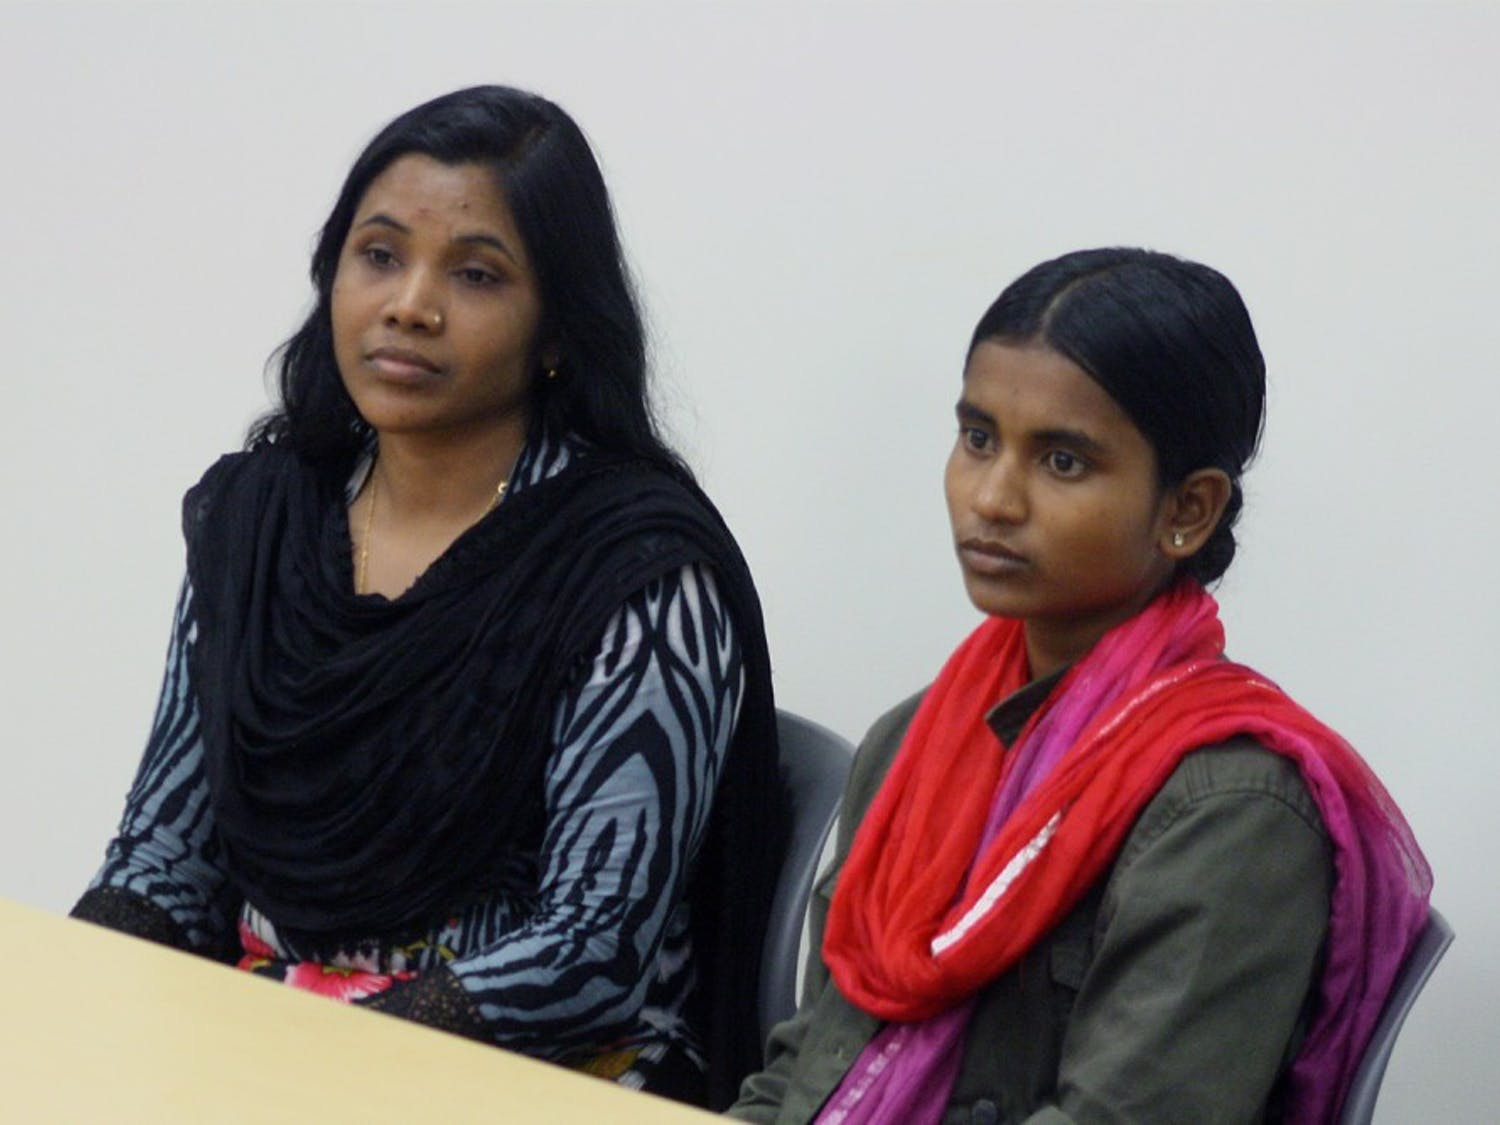 The Student Action with workers invited two Bangladeshi workers to speak in the Union. These two have traveled across the country to at least 18 different schools in order to advocate the end of harmful environments for workers in factories. Aleya Akter (left) and Aklima Khanam (right) along with their translator.